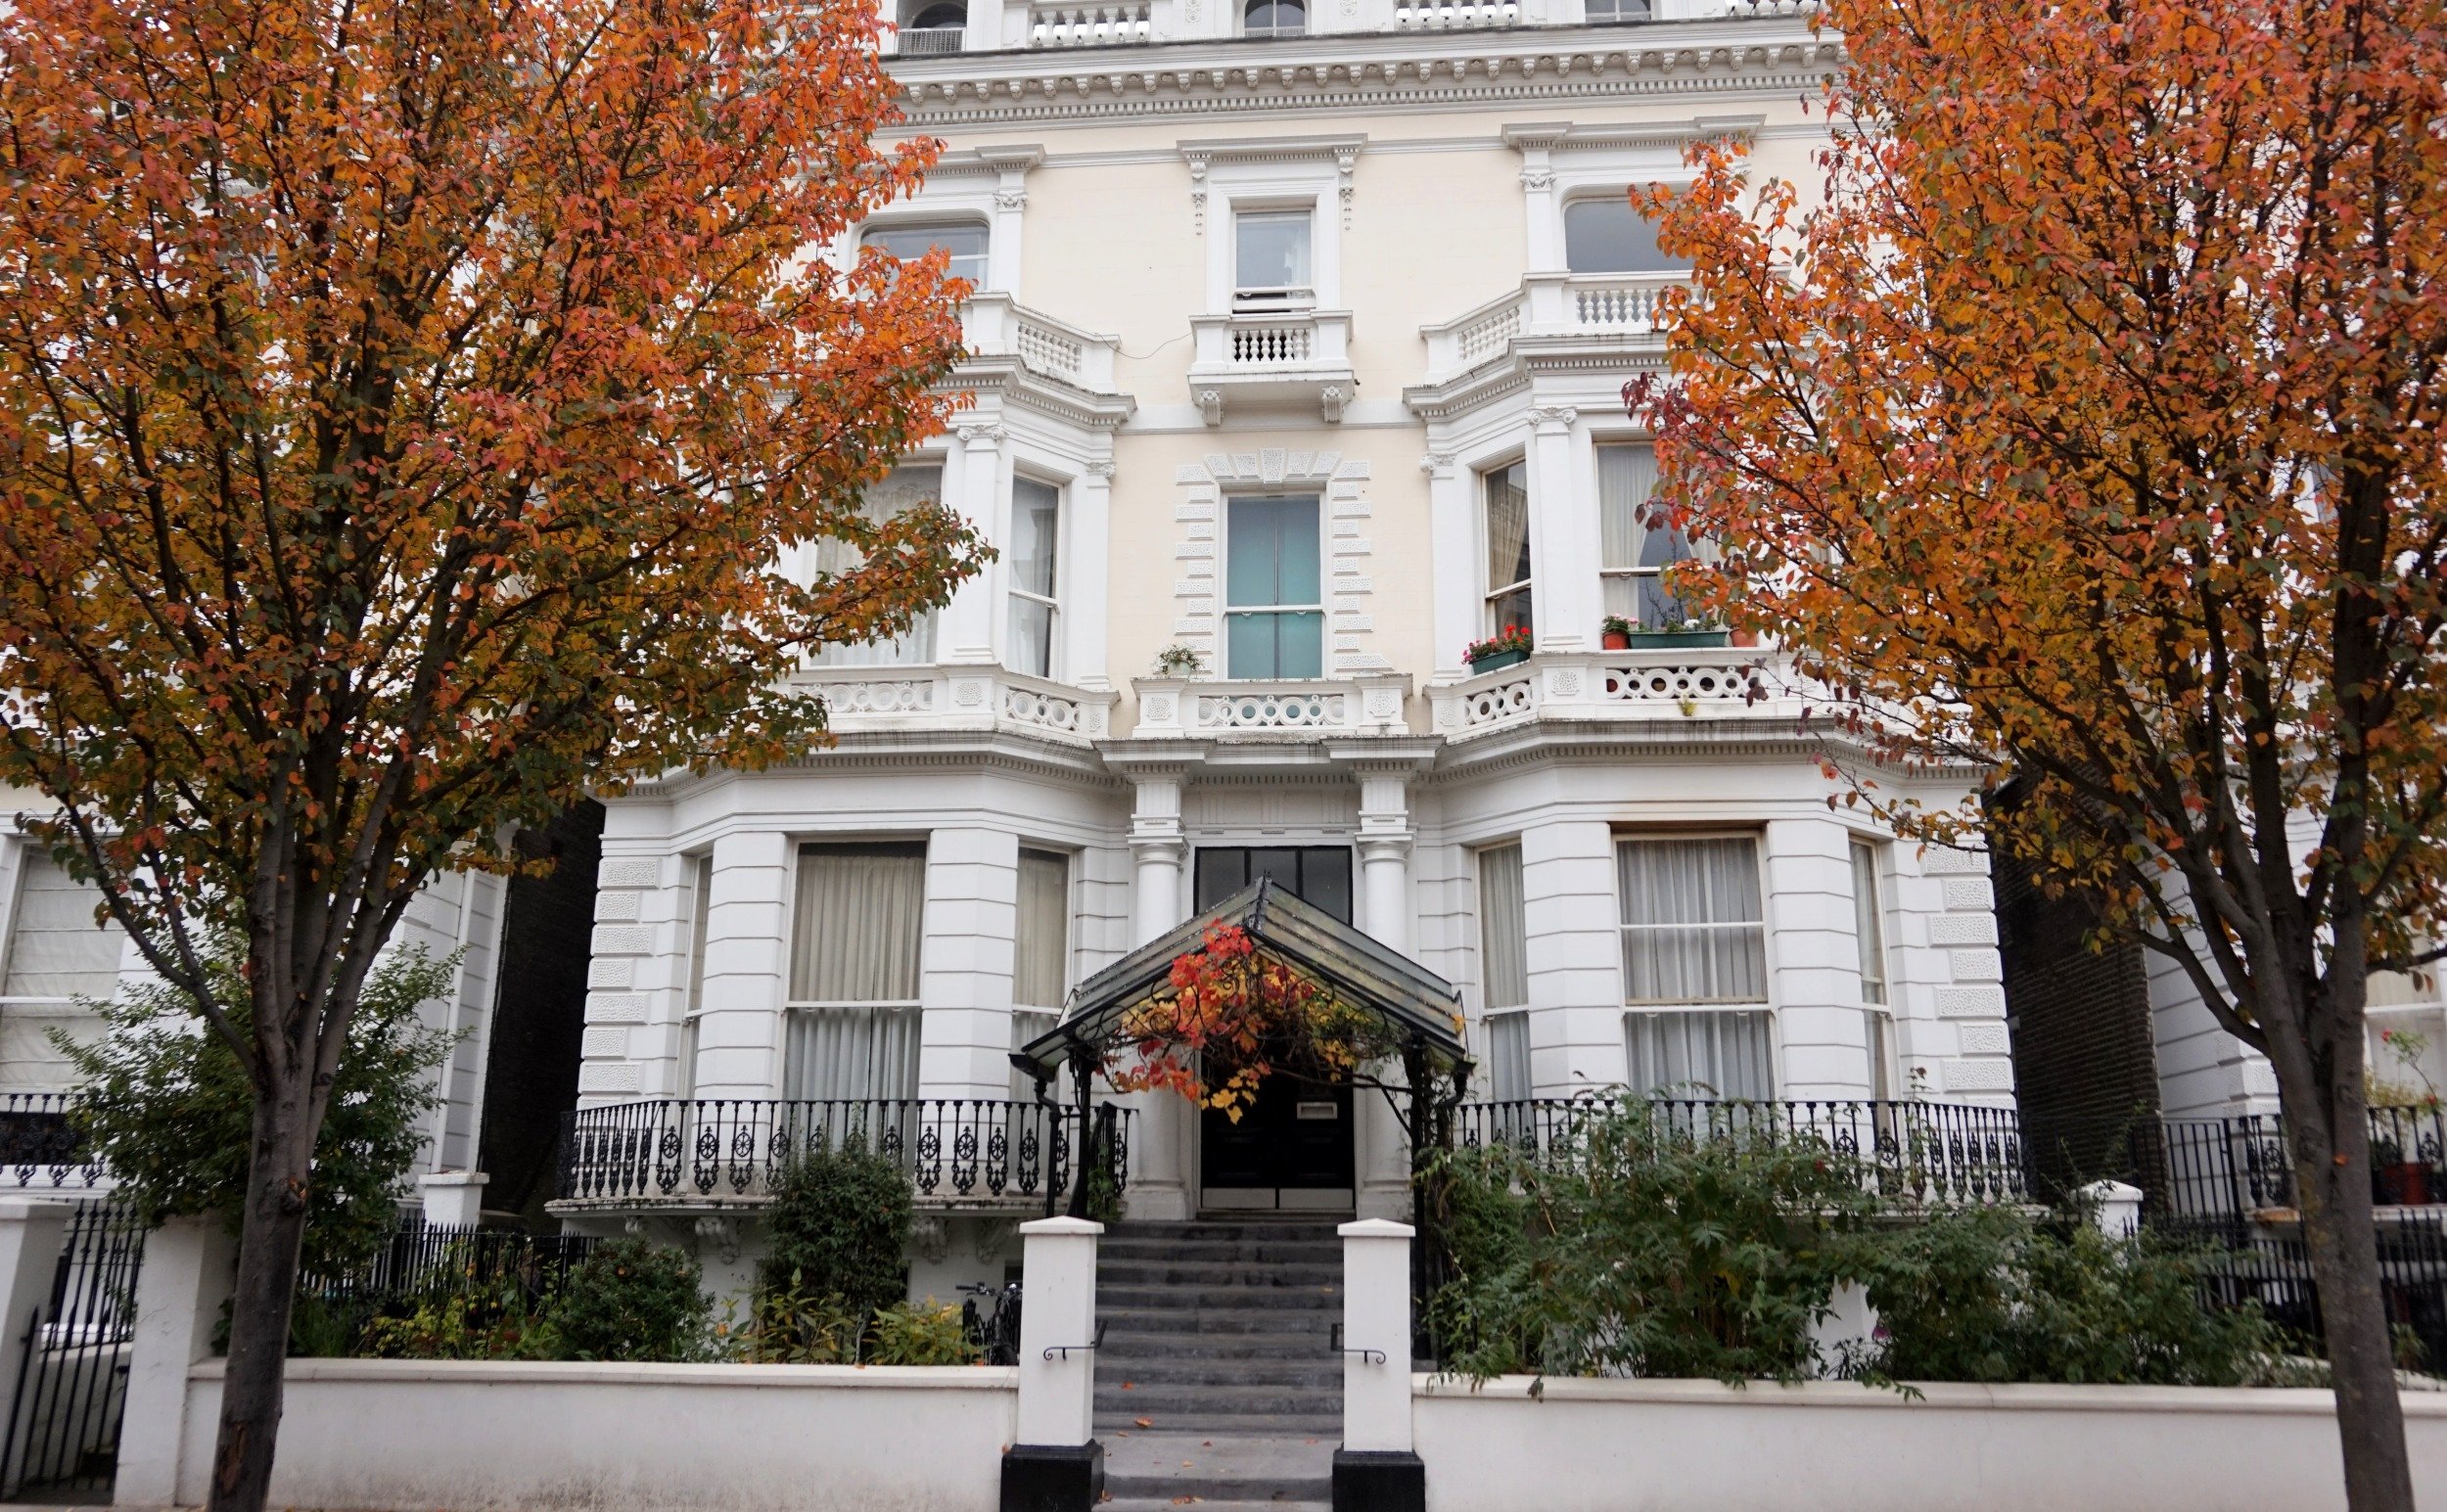 automne16-notting-hill-5